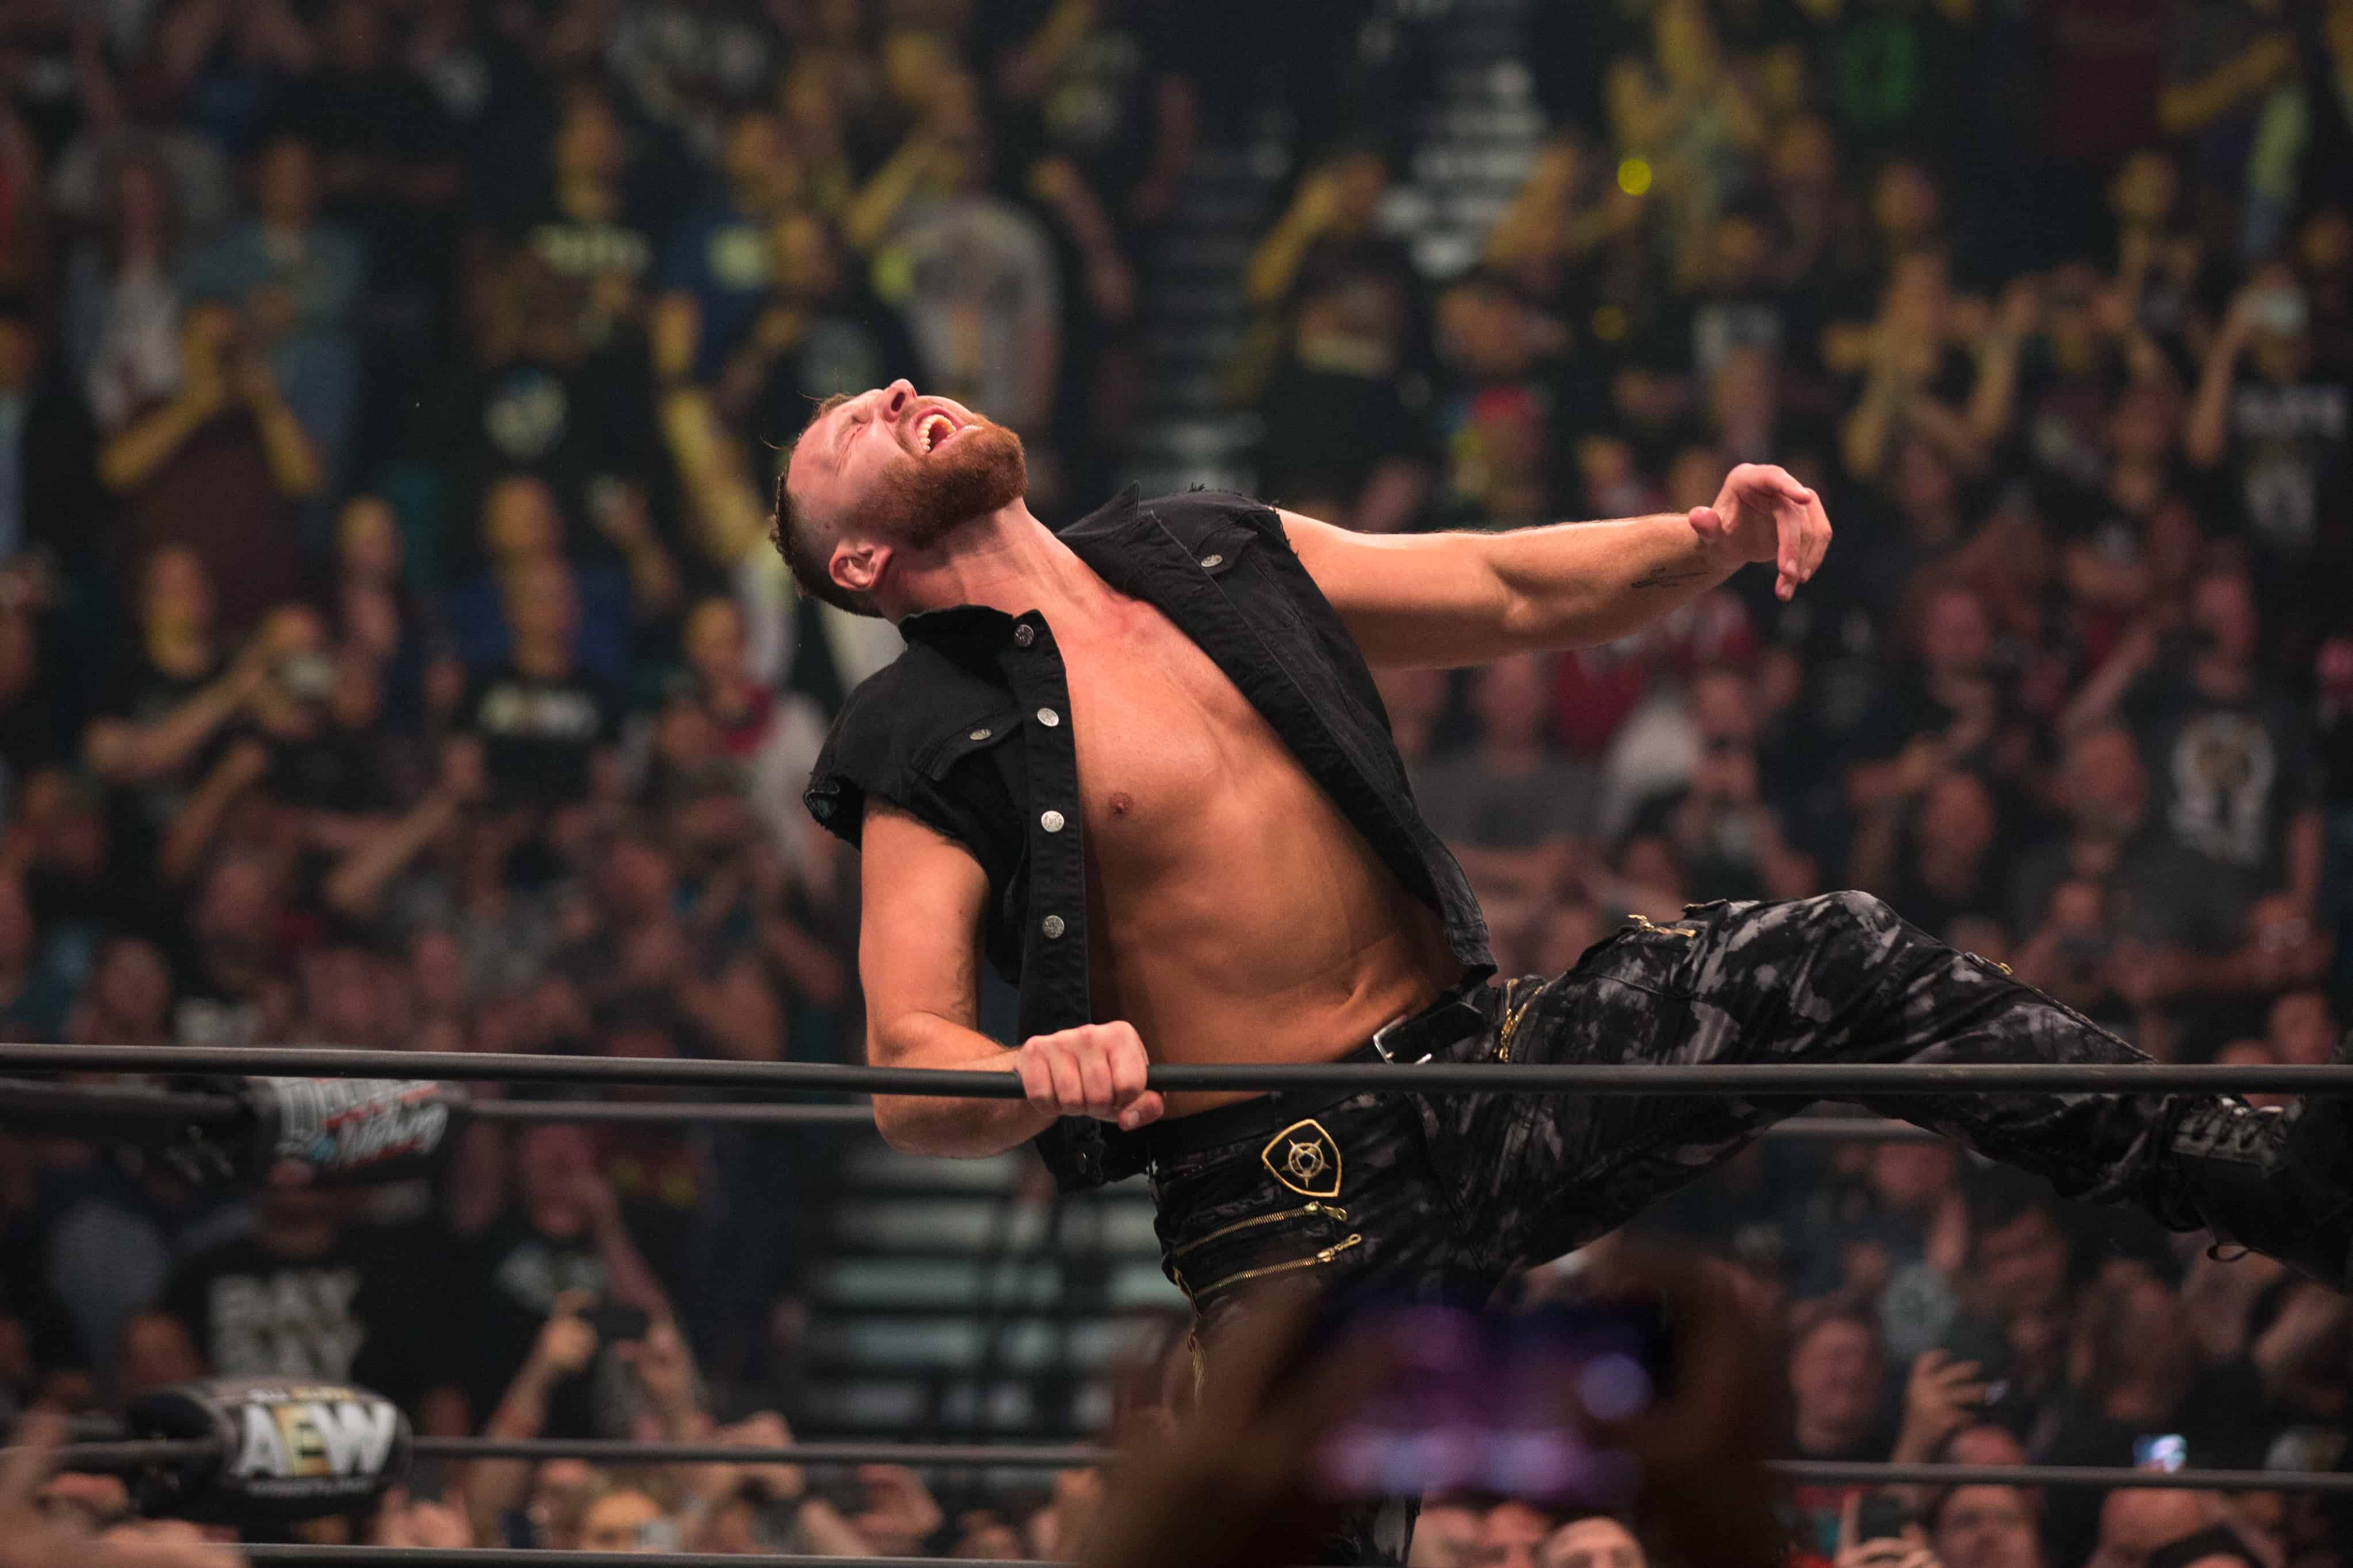 Jon Moxley is set to make a positive difference in AEW and beyond.